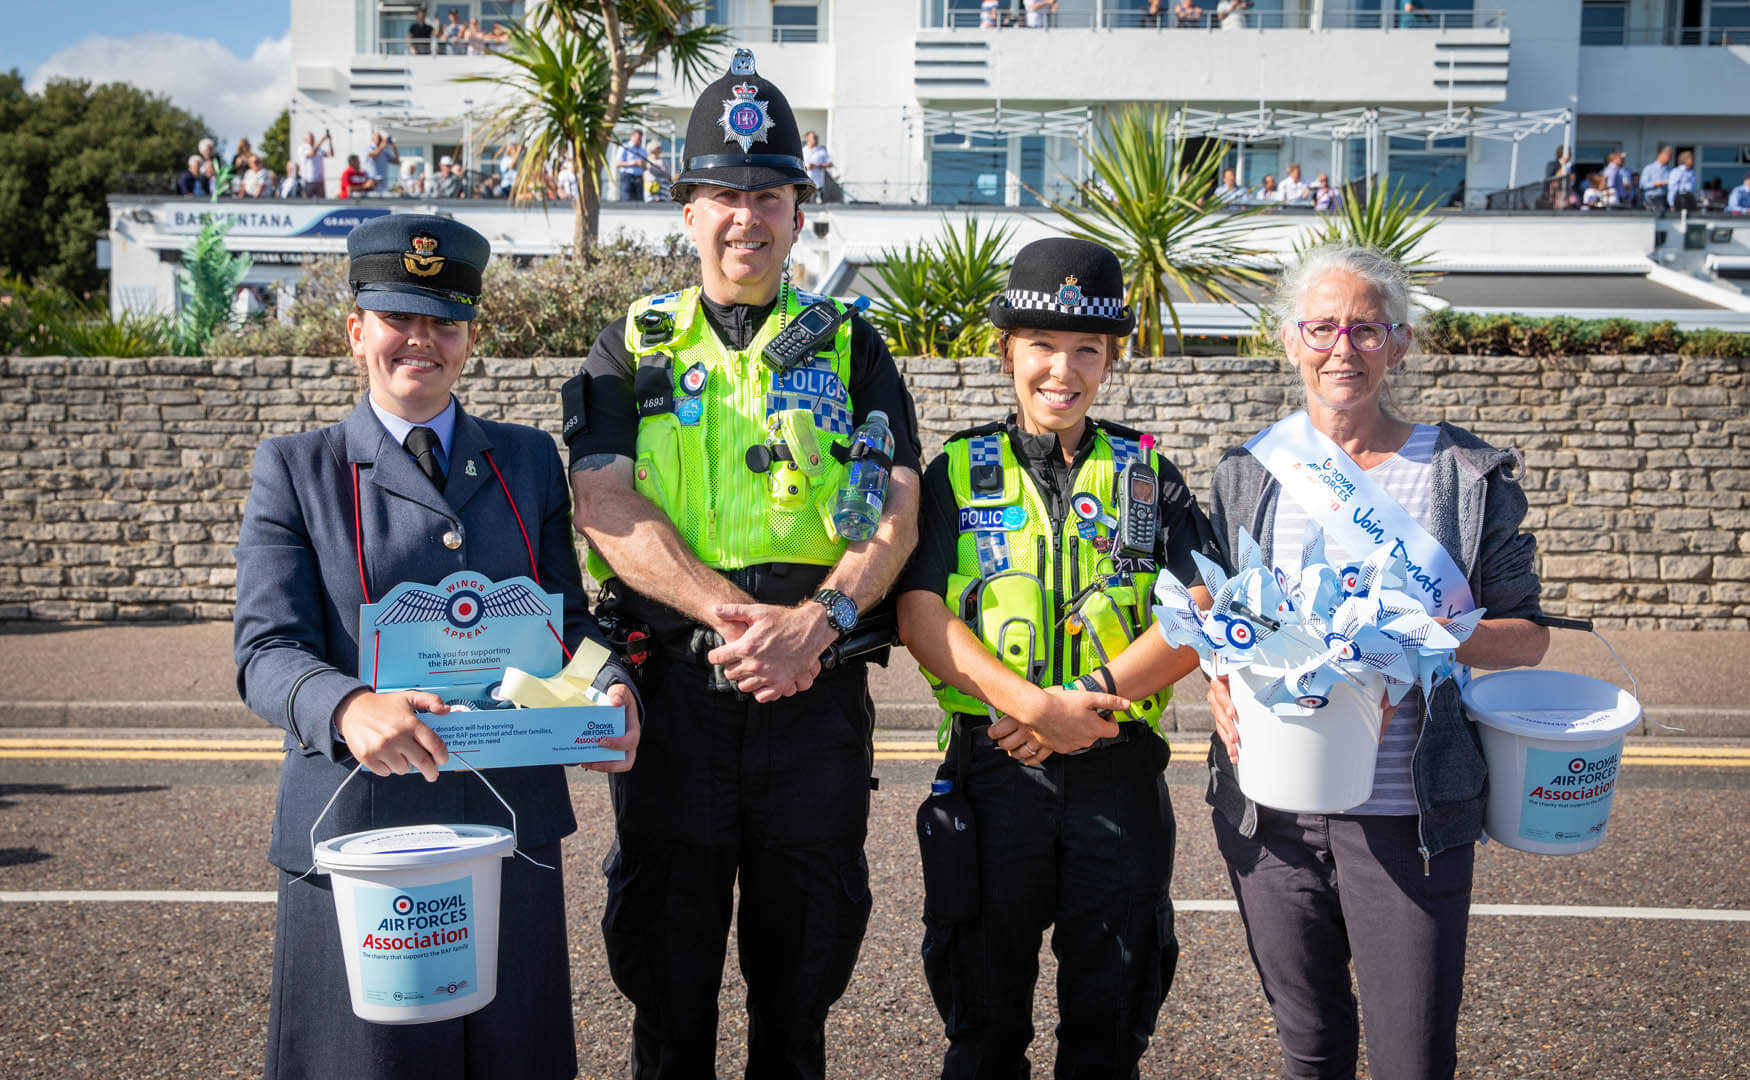 Two police officers having a photo with two royal air force charity members